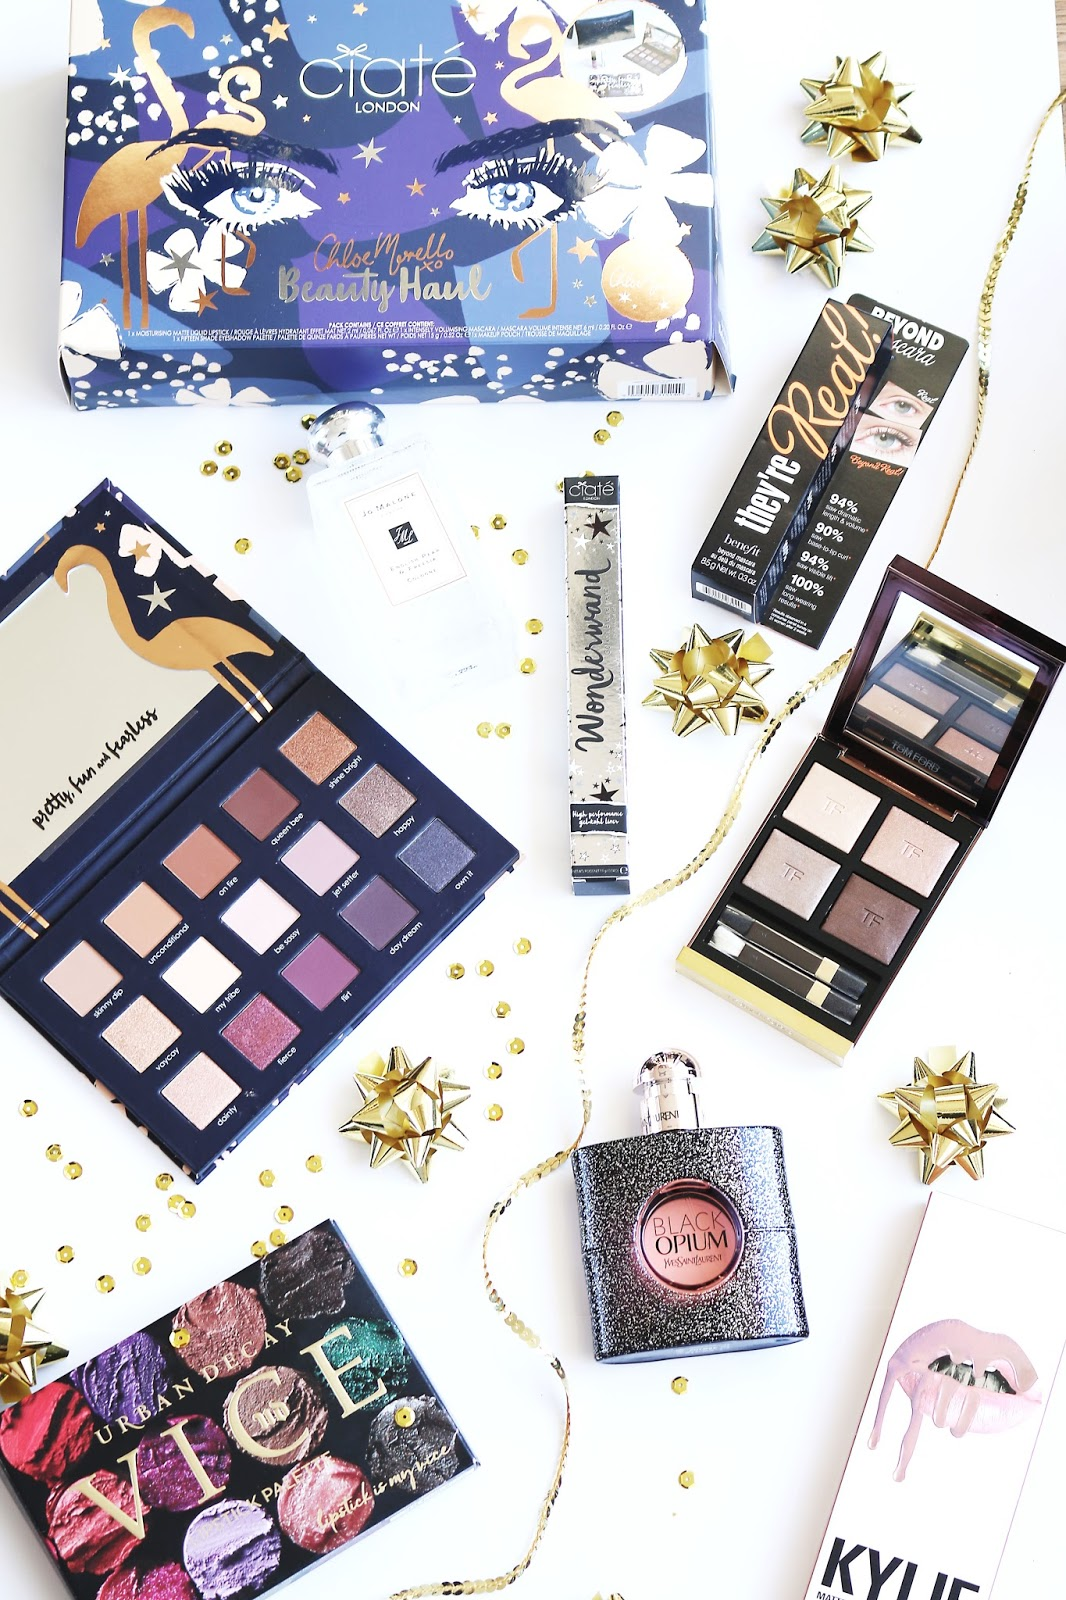 Beauty, Blogmas, Christmas, Gift Guide, Christmas gift guide, Shopping, things to buy people, what to buy people for Christmas, beauty presents, Charlotte Tilbury, Too Faced, Luxury Christmas gift Guide, Teen gift guide, what to buy teens for Christmas, presents for your girlfriend, presents for your wife, Zoella beauty